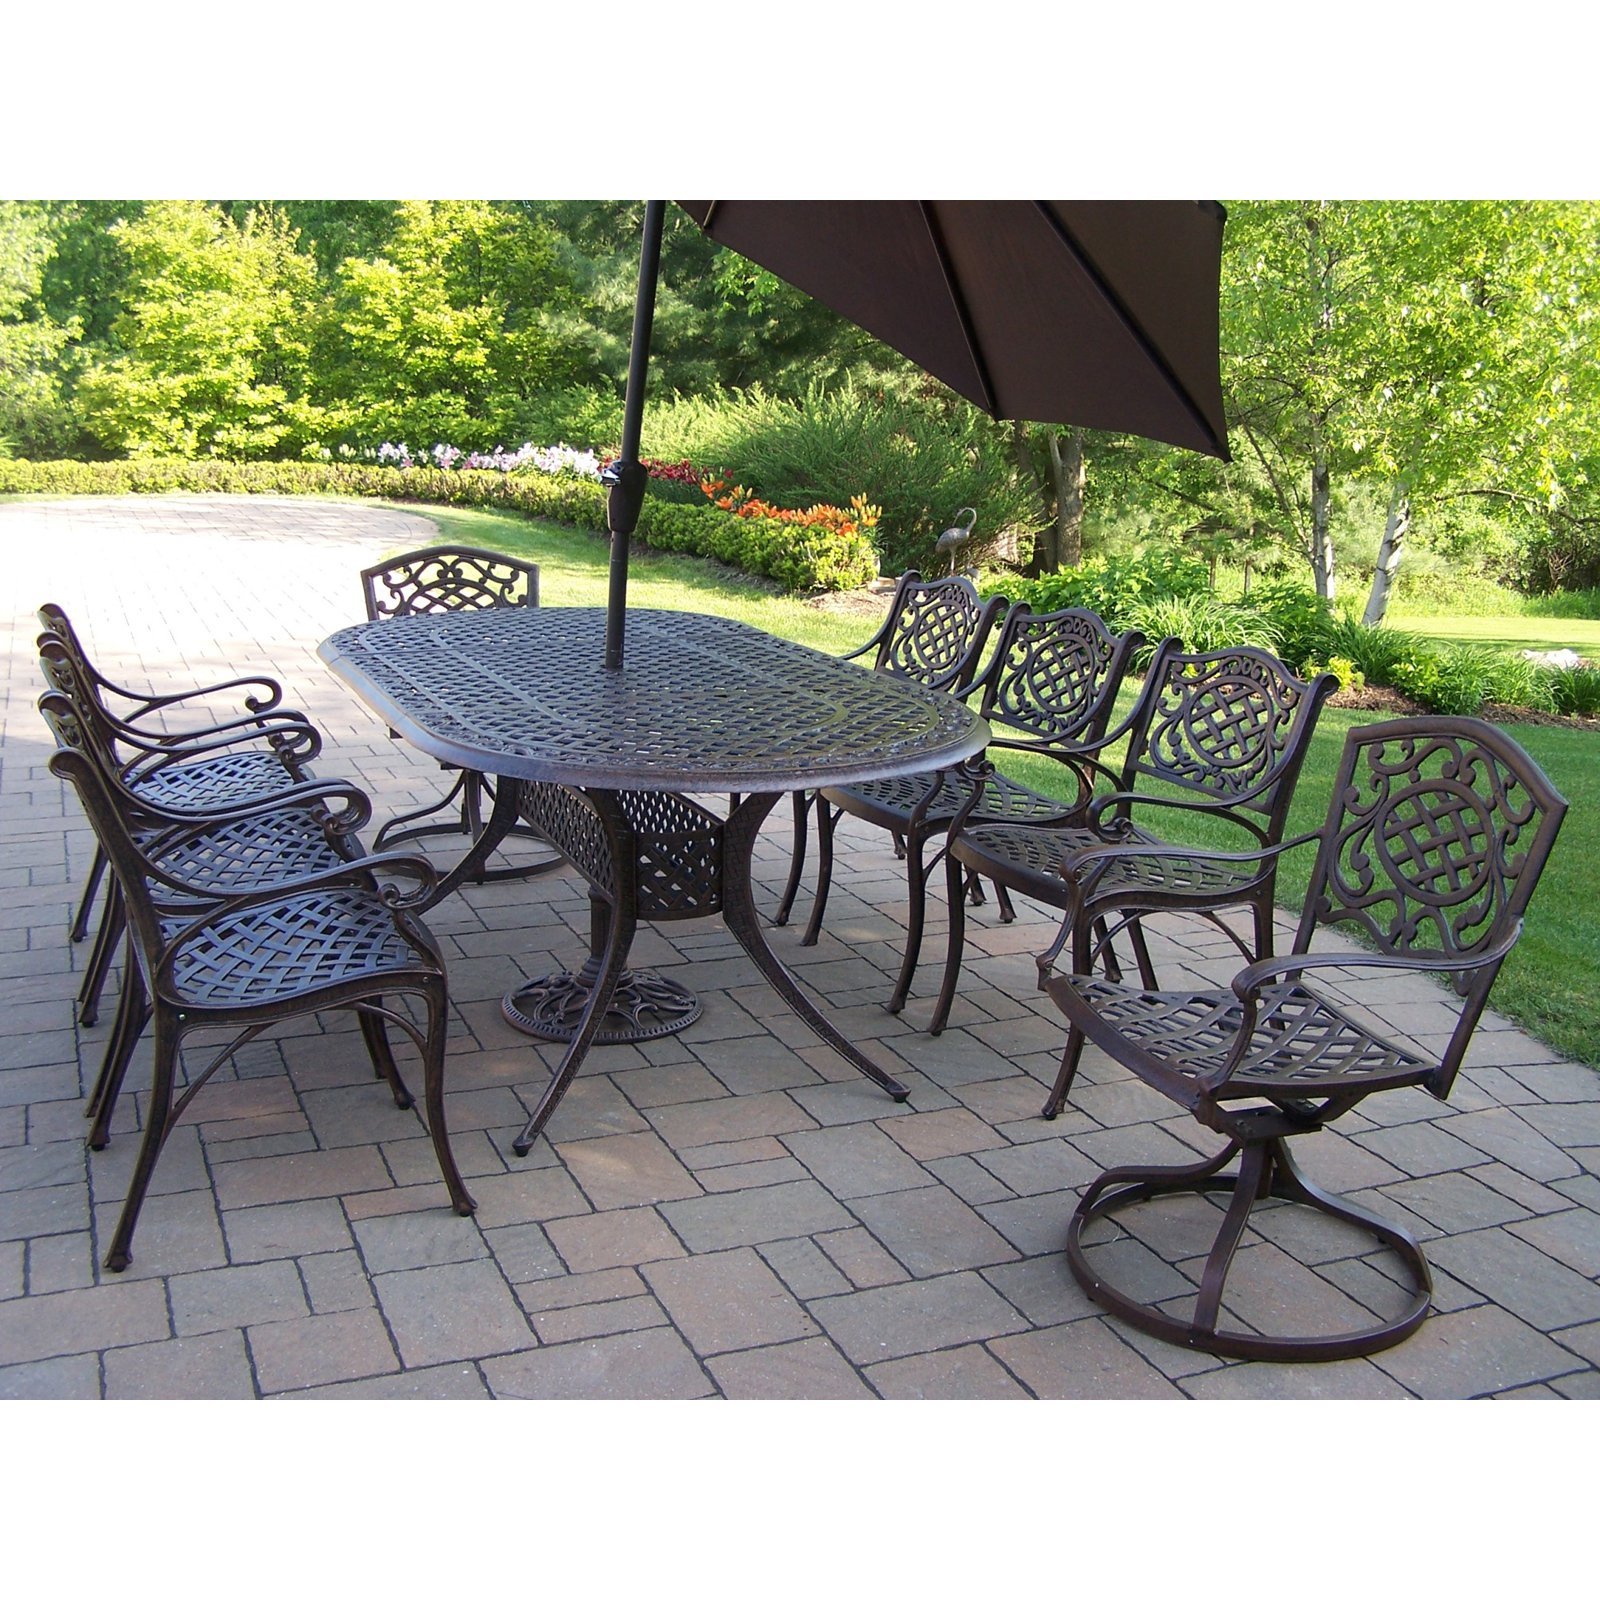 Oakland Living Mississippi Cast Aluminum 82 X 42 In Oval Patio